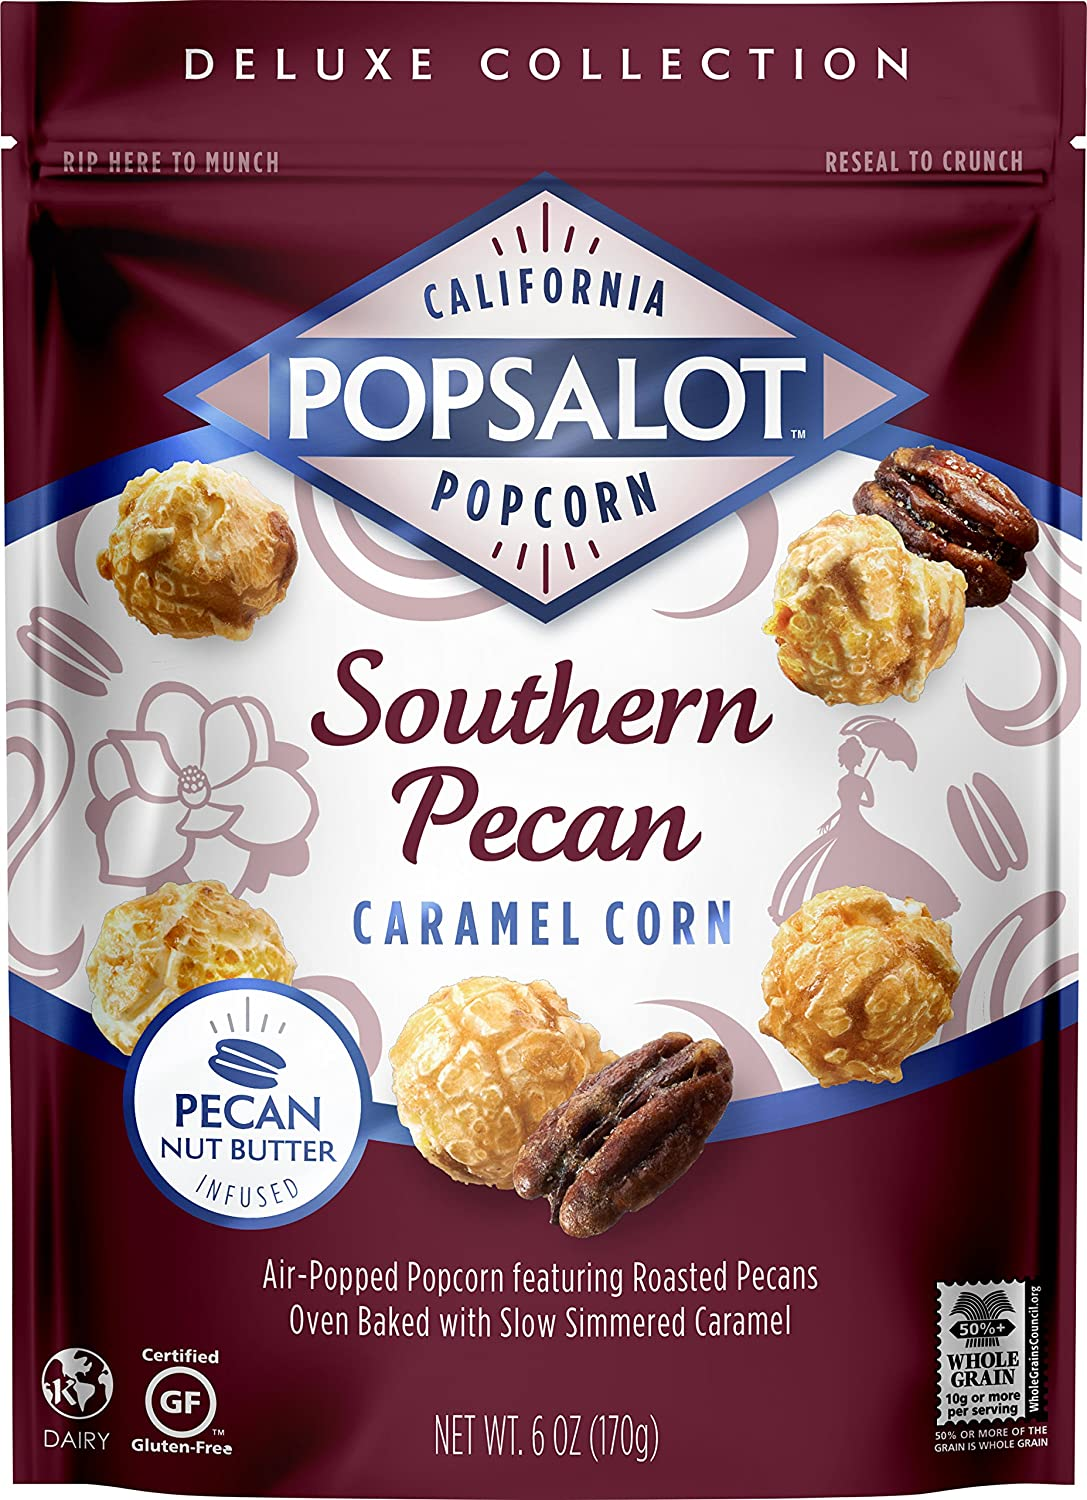 Popsalot Max 70% OFF Gourmet Popcorn Southern Cheap mail order specialty store Pecan Po 6-Ounce Caramel Corn